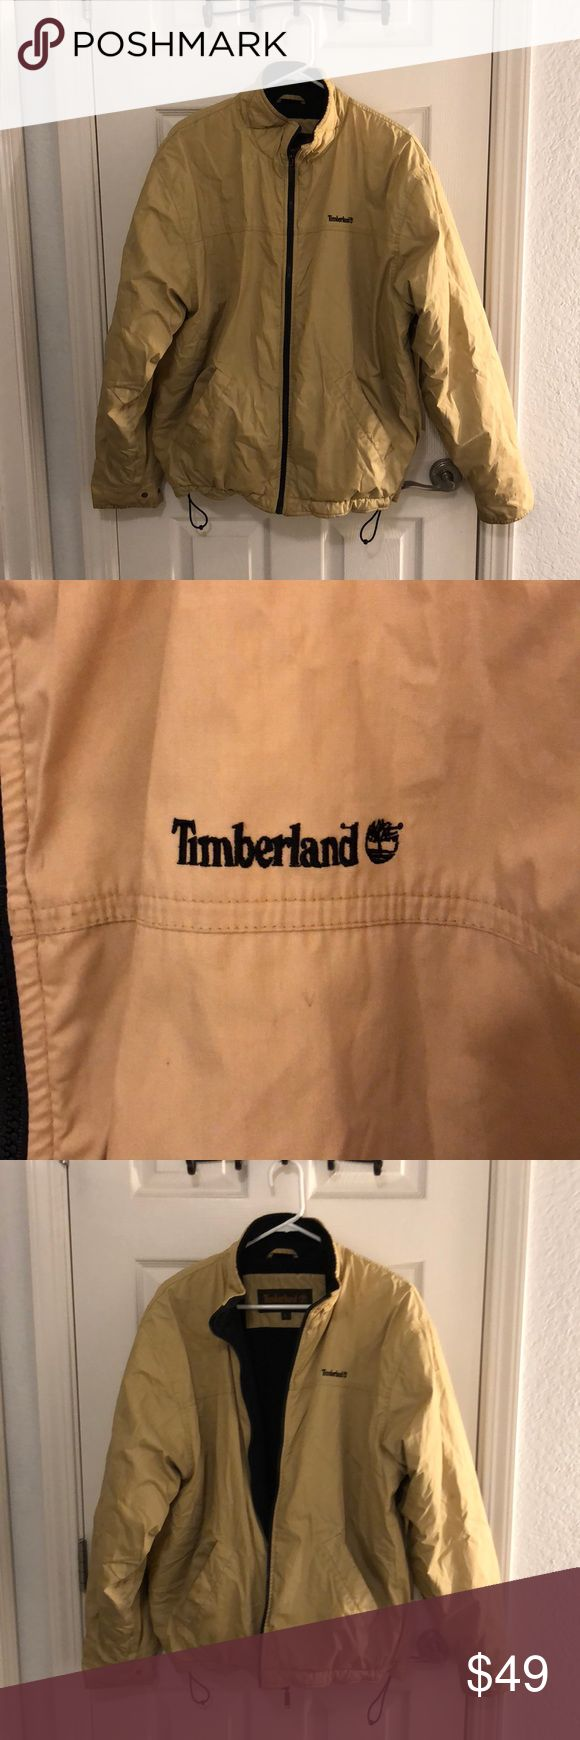 Timberland Coat This is a decent condition men's Timberland coat. The brand speaks for itself. Timberland is a top shelf brand and you gotta sport this good looking jacket. There are some dirt marks around the wrists and on some places around the jacket as shown in the photos. A good dry cleaning may get that out but I don't have the time. Make an offer :-) Timberland Jackets & Coats